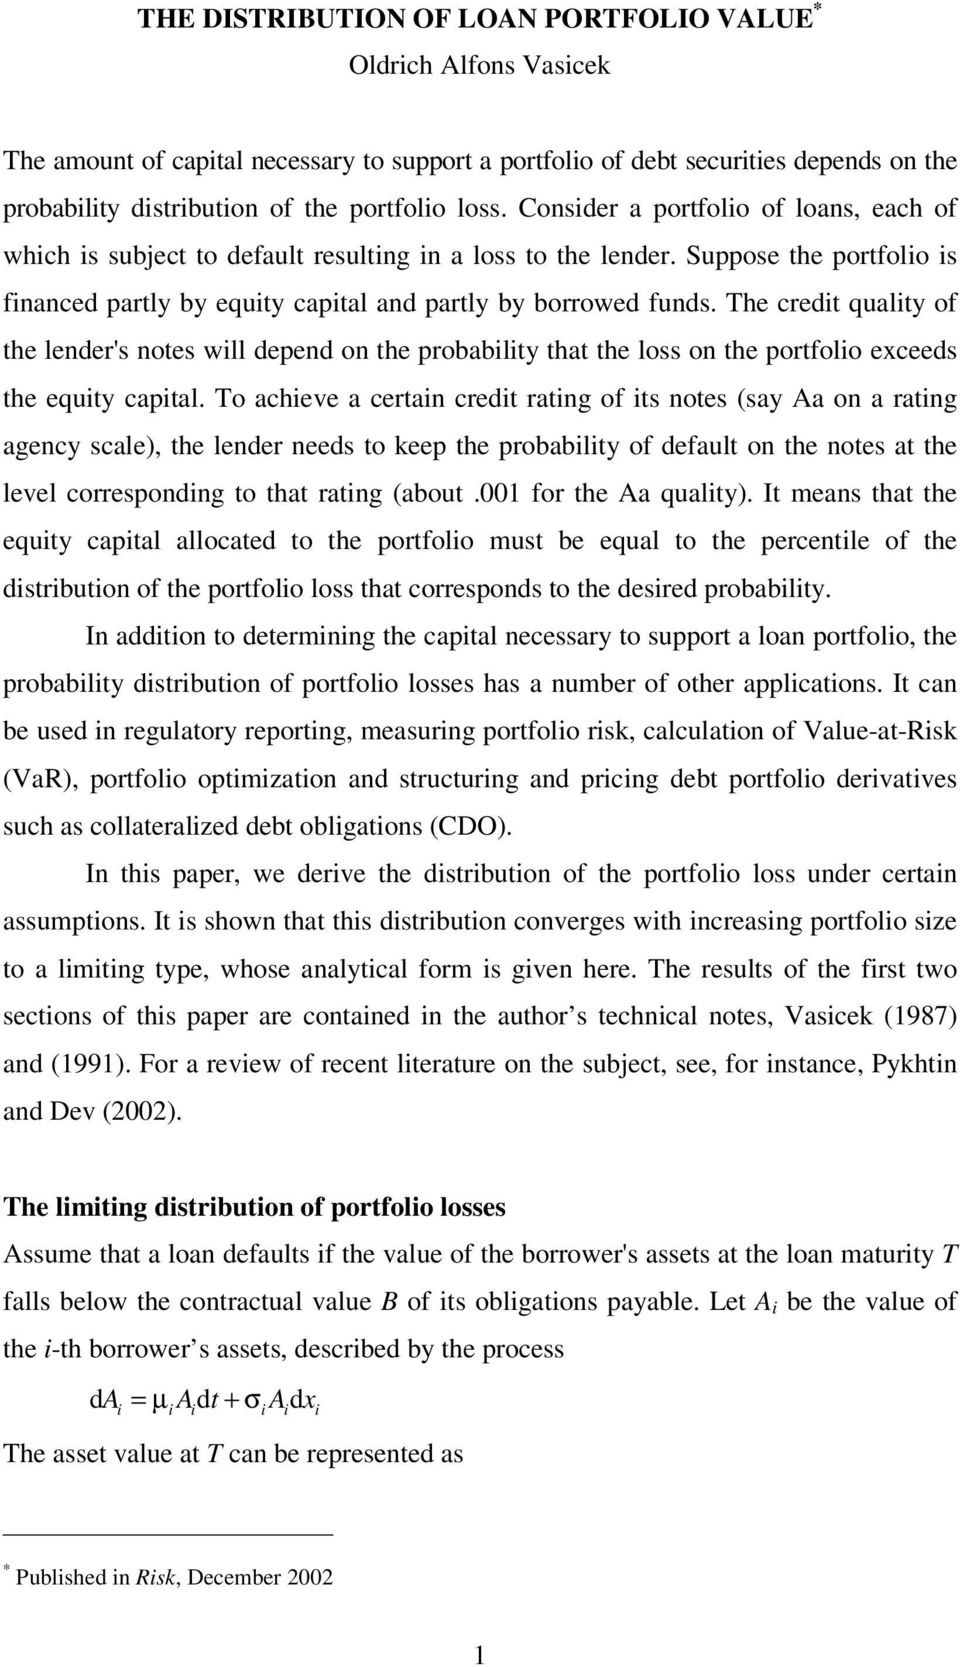 he credt qualty of the lender's notes wll depend on the probablty that the loss on the portfolo exceeds the equty captal.